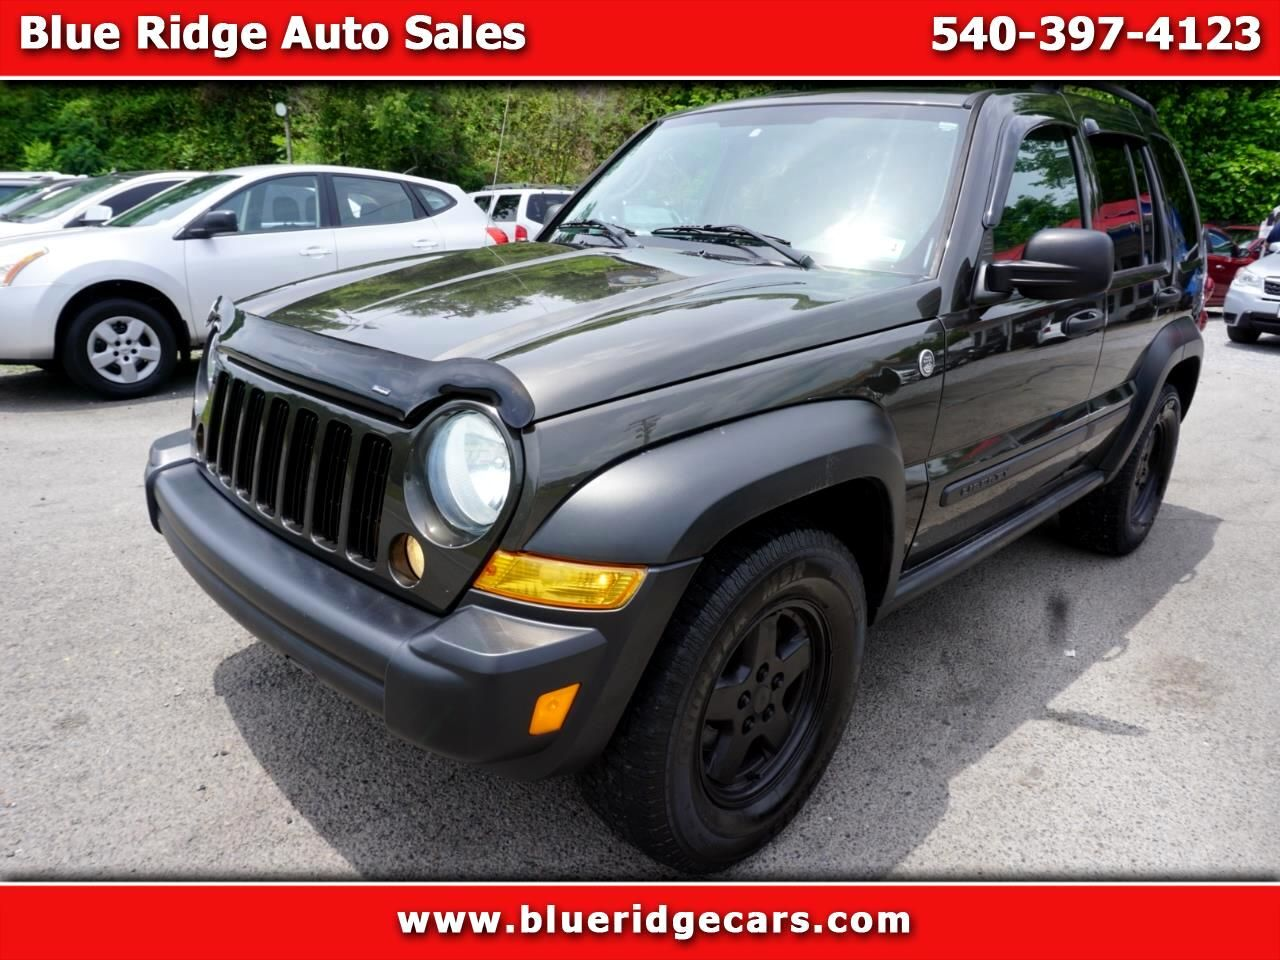 Used Jeep Liberty For Sale In Roanoke Va 11 Cars From 3 400 Iseecars Com In 2020 Used Jeep Jeep Liberty Jeep